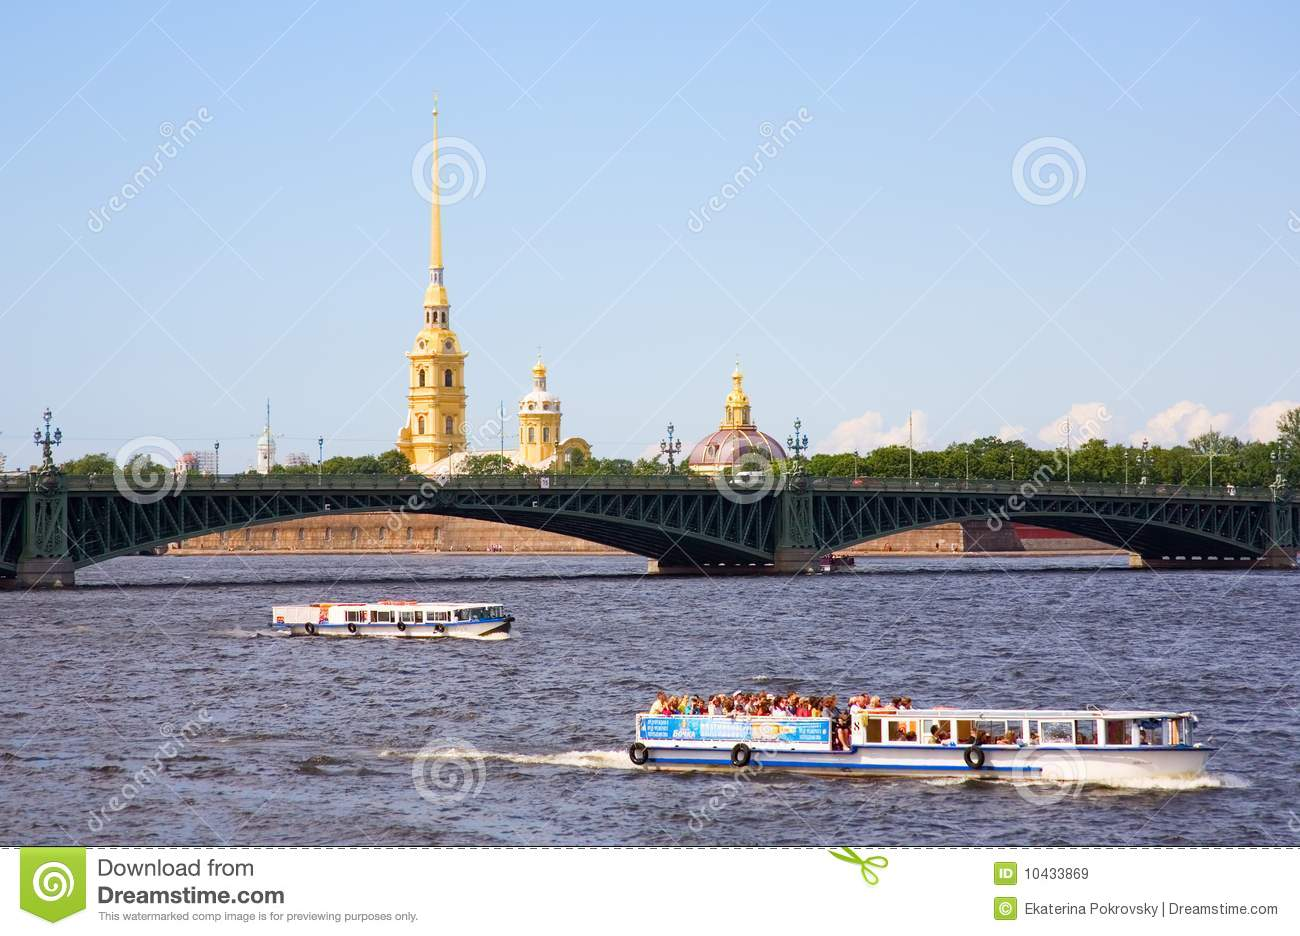 Boat Excursions On The Neva River In St.Petersburg Royalty Free.